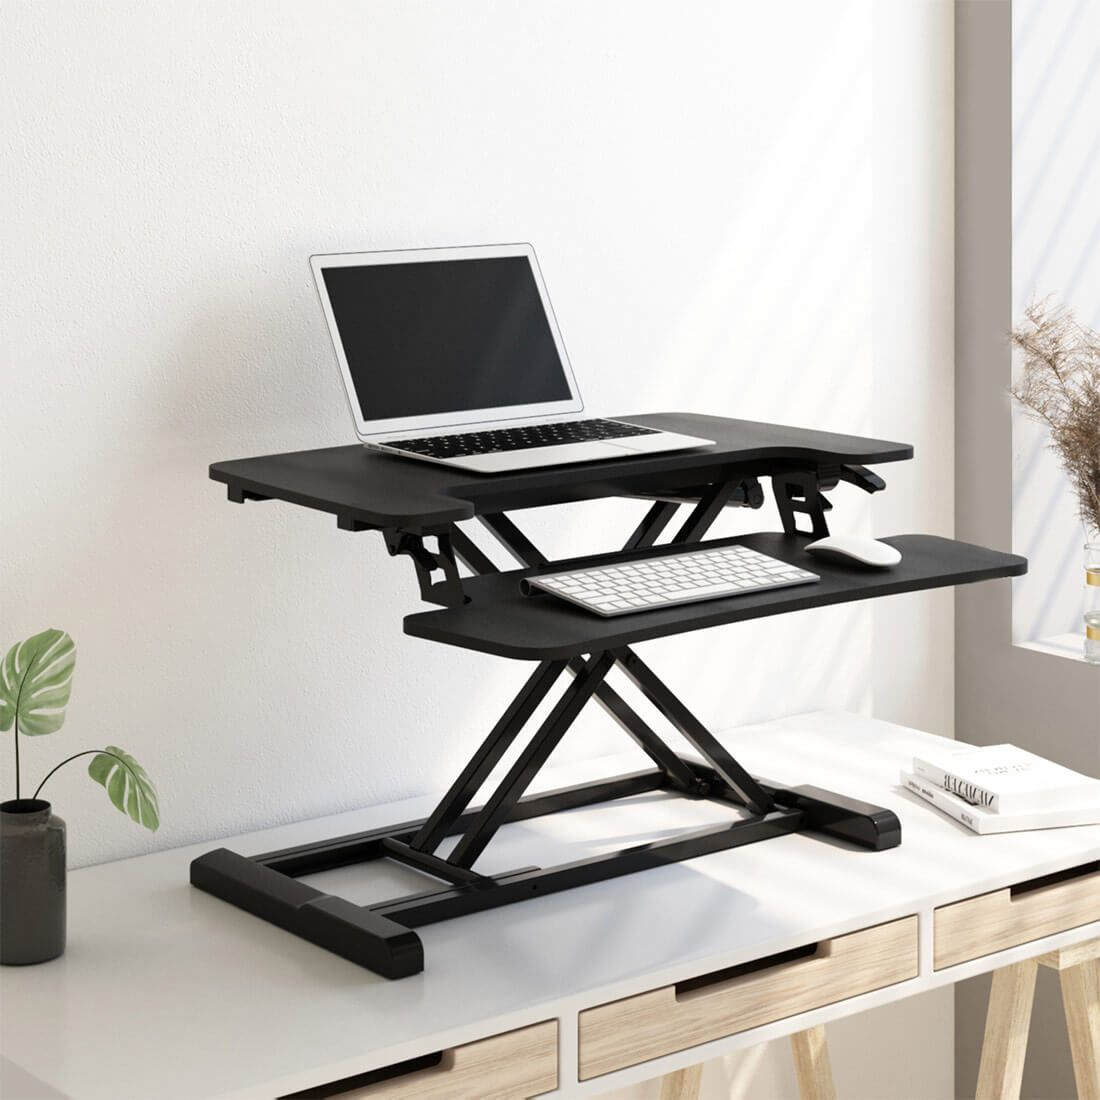 FLEXISPOT Stand Up Desk Converter is a desk riser rather than a standing desk for those who wants to convert traditional desk into an active sit/stand desk